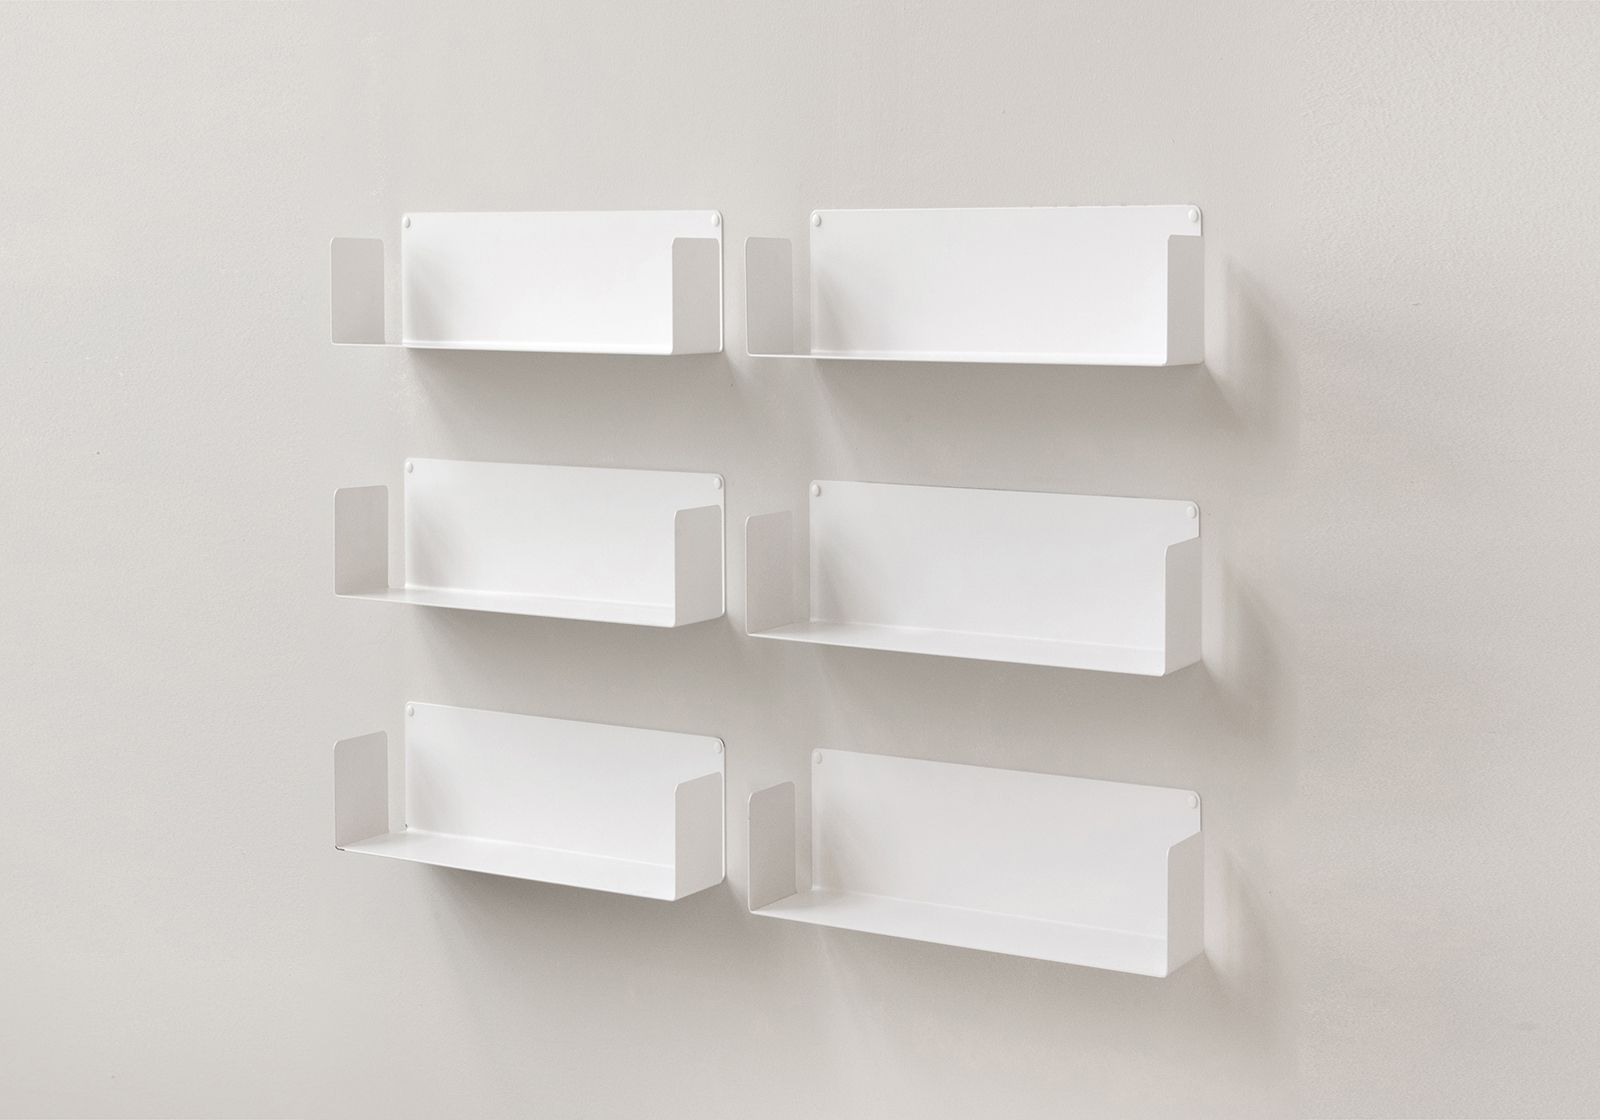 Floating Wall Shelves Us 17 71 Inch Long Set Of 6